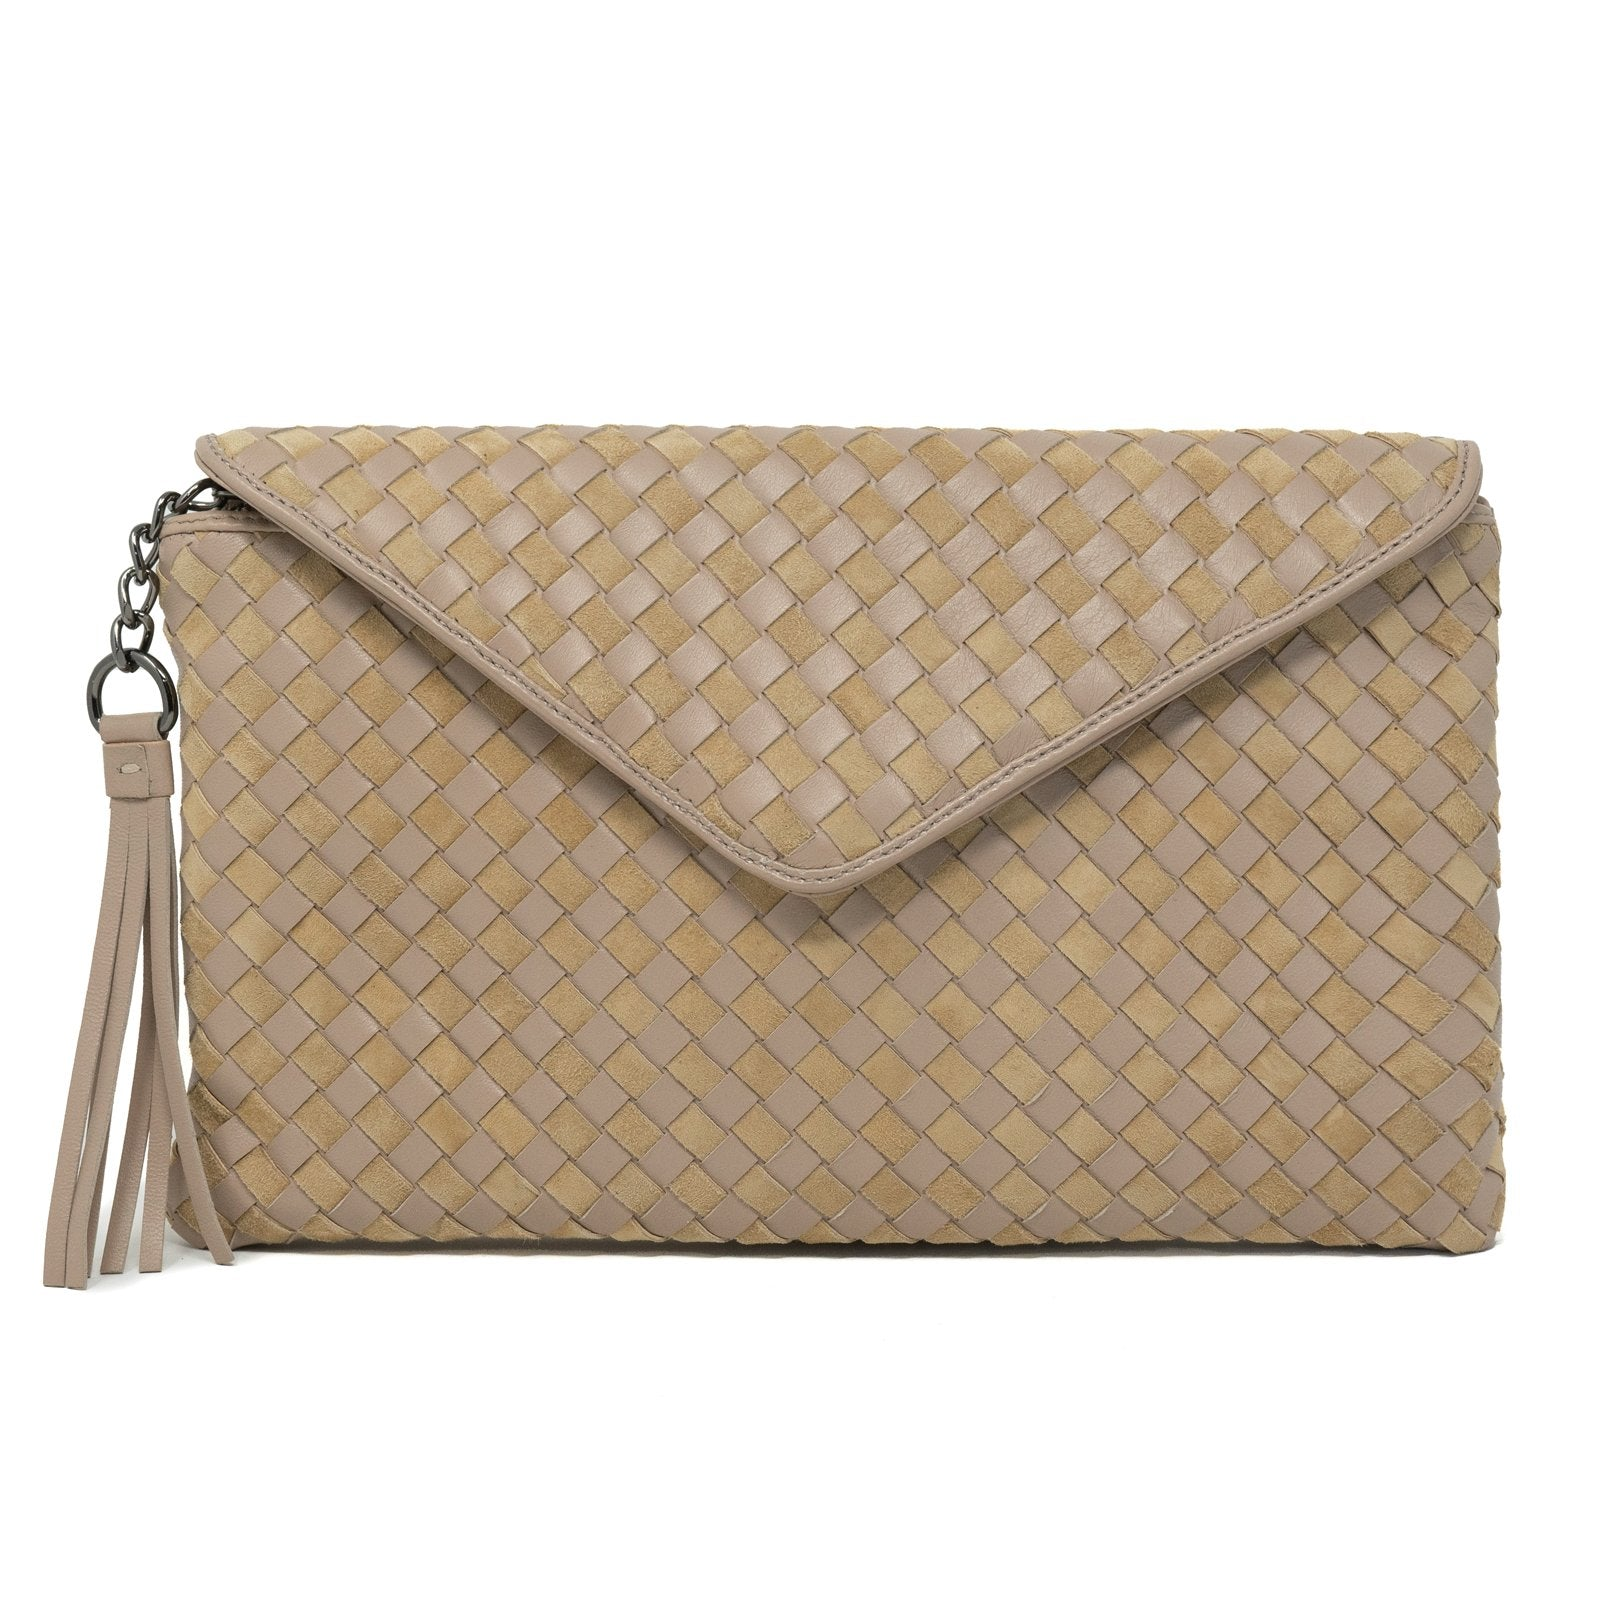 Women Intrecciato Leather Clutch Intrecciato Quadro Camel - Jennifer Tattanelli